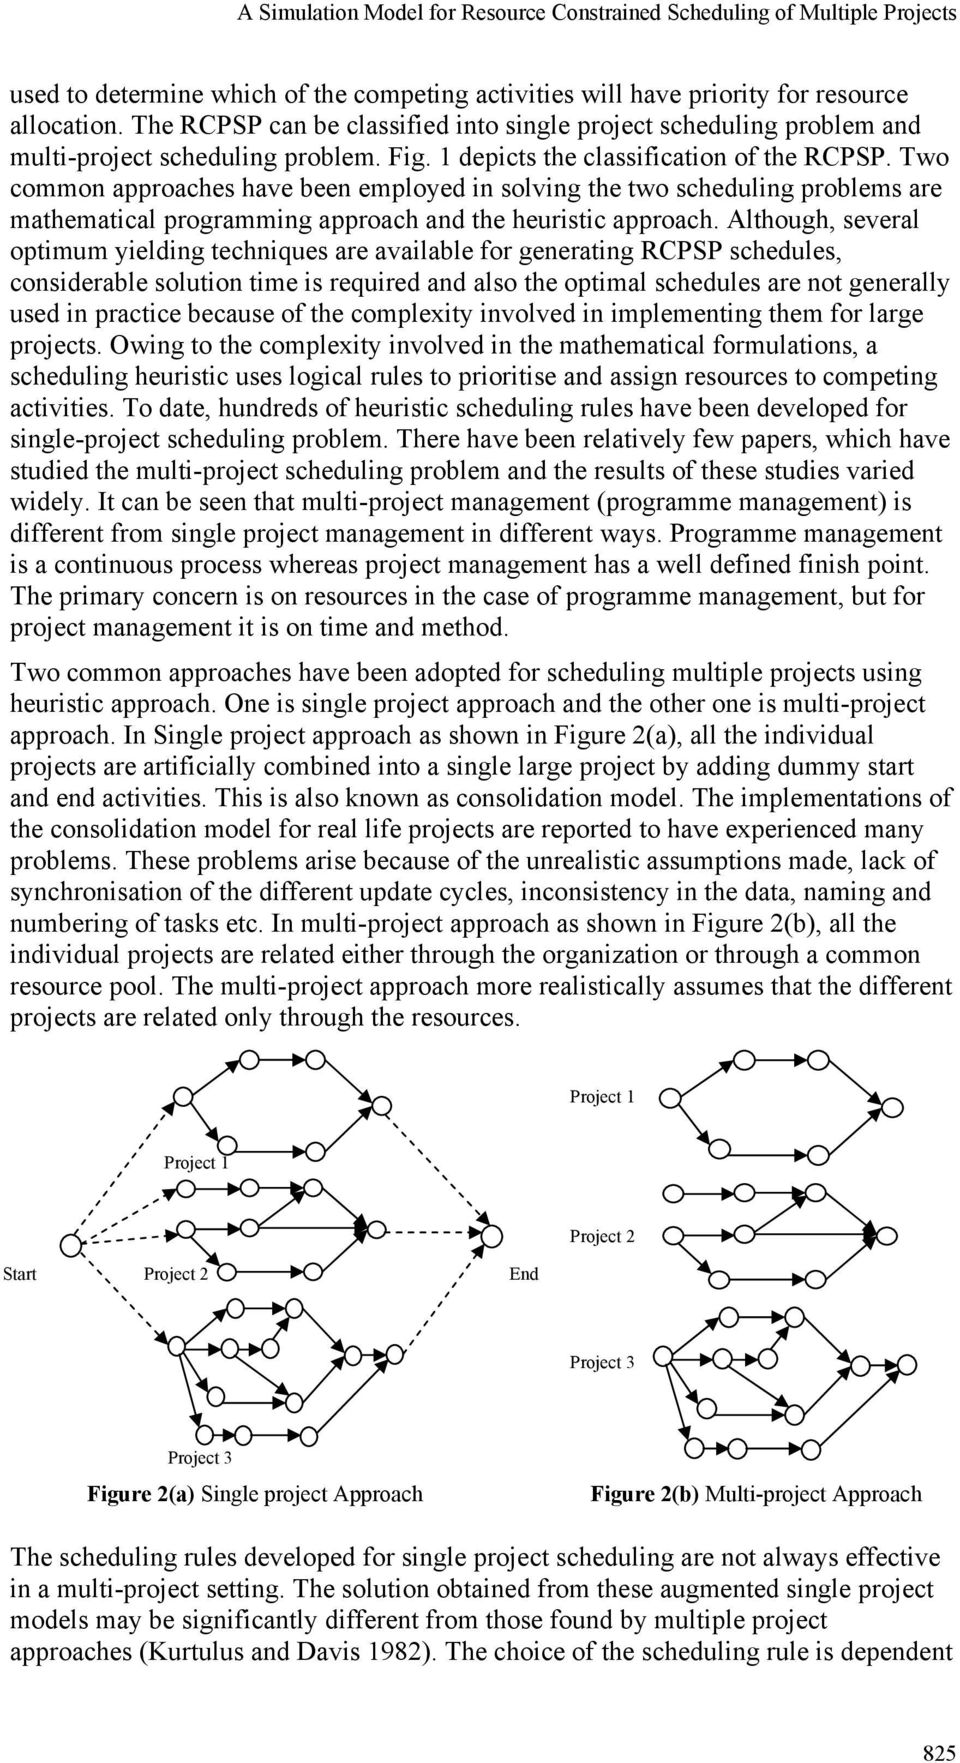 Two common approaches have been employed in solving the two scheduling problems are mathematical programming approach and the heuristic approach.